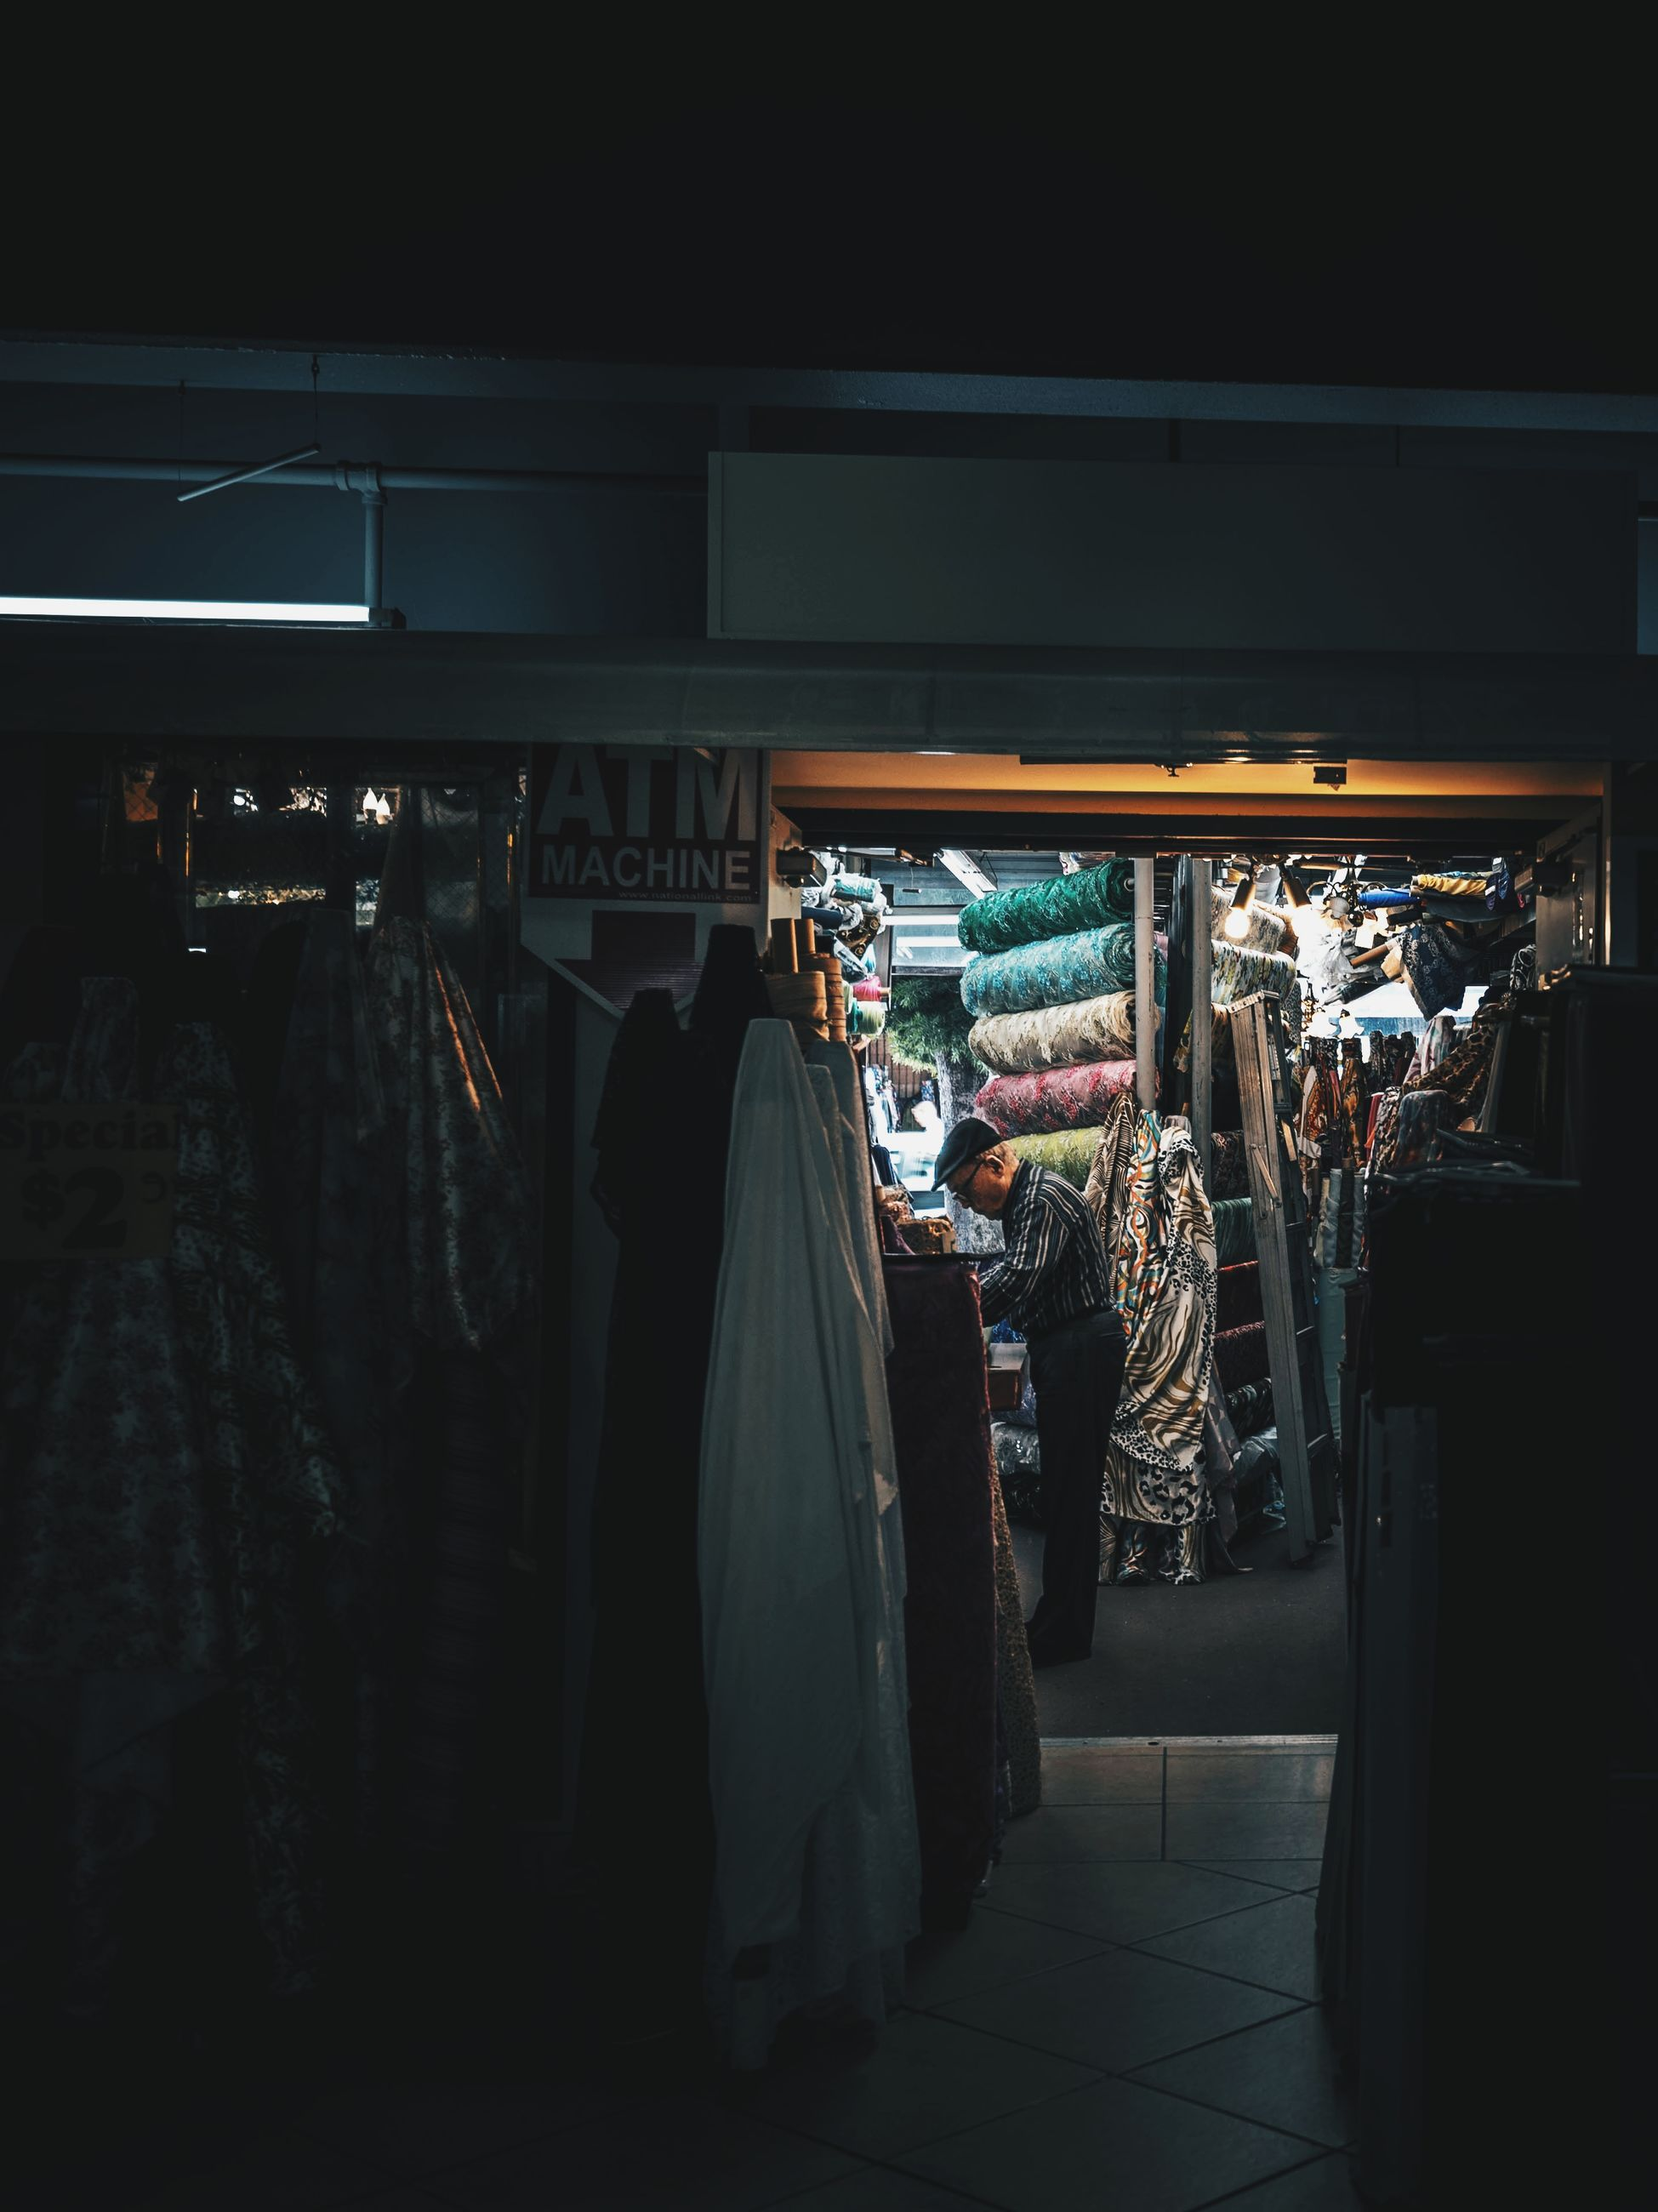 retail, coathanger, clothing store, clothing, store, clothes rack, boutique, fashion, indoors, consumerism, no people, day